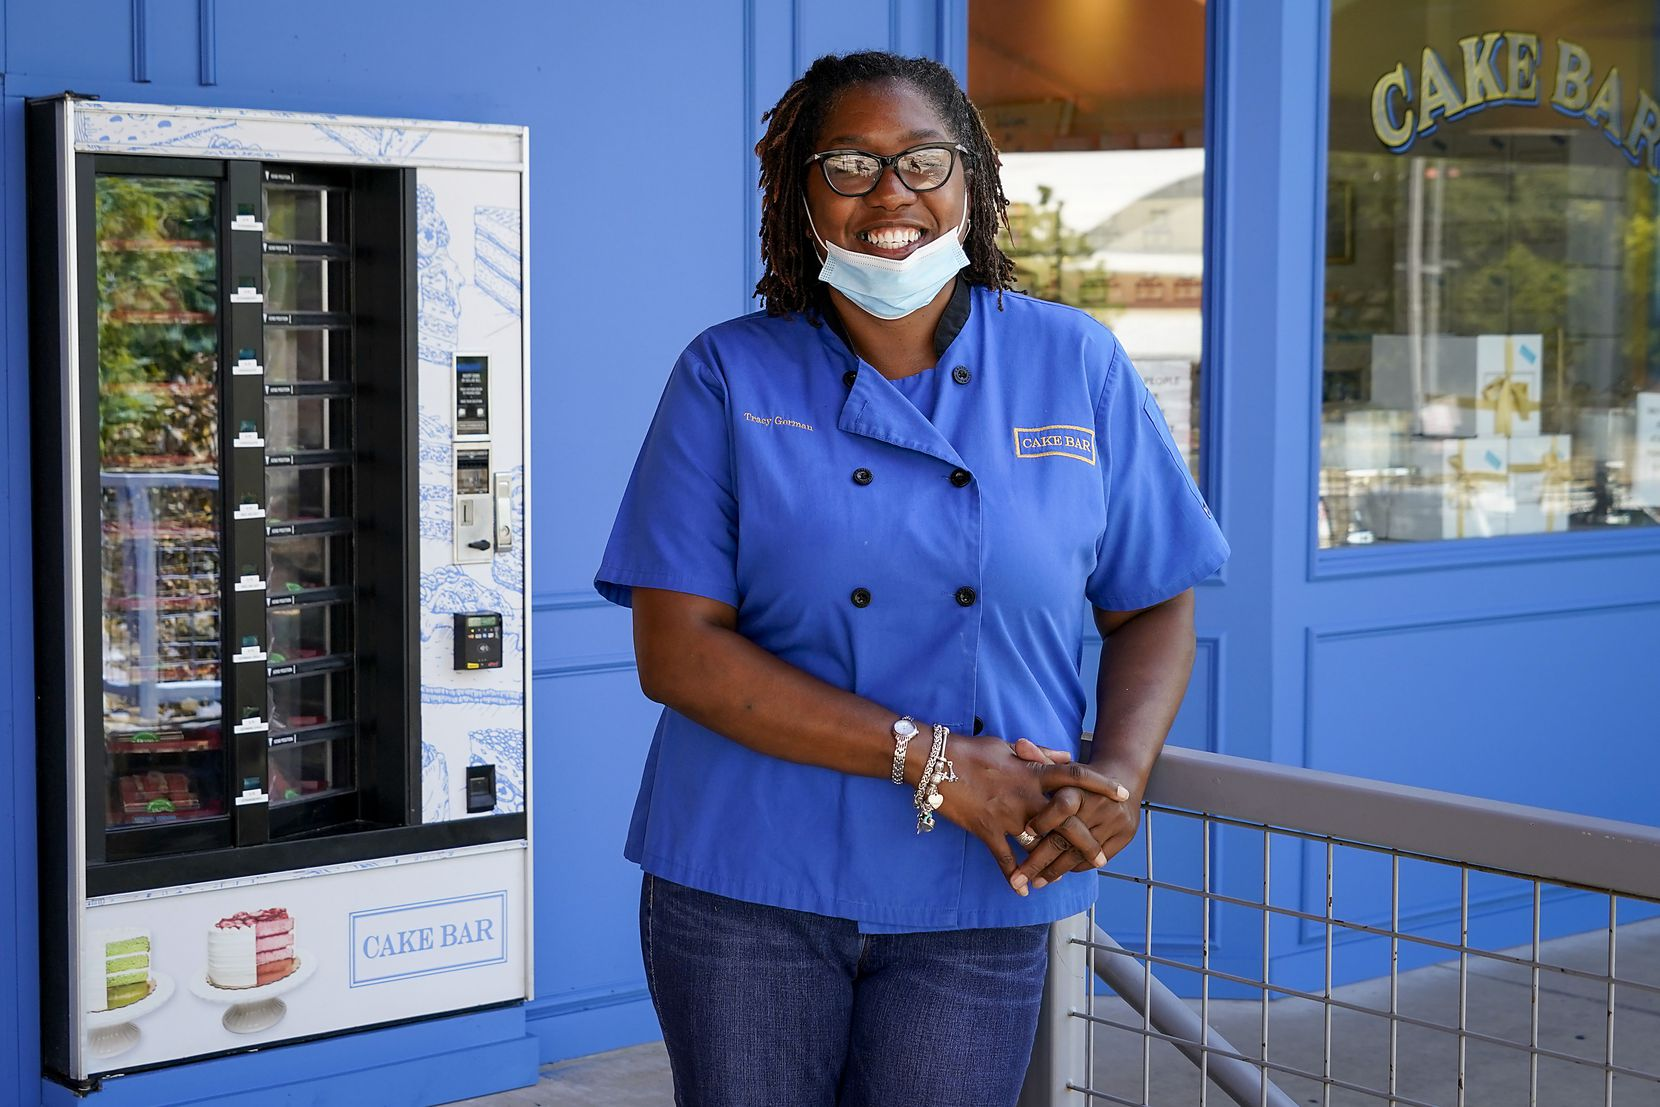 Tracy German, Cake Bar's operator, bought a vending machine. The lazy susans inside the machine dispense slices of cake 24 hours a day.